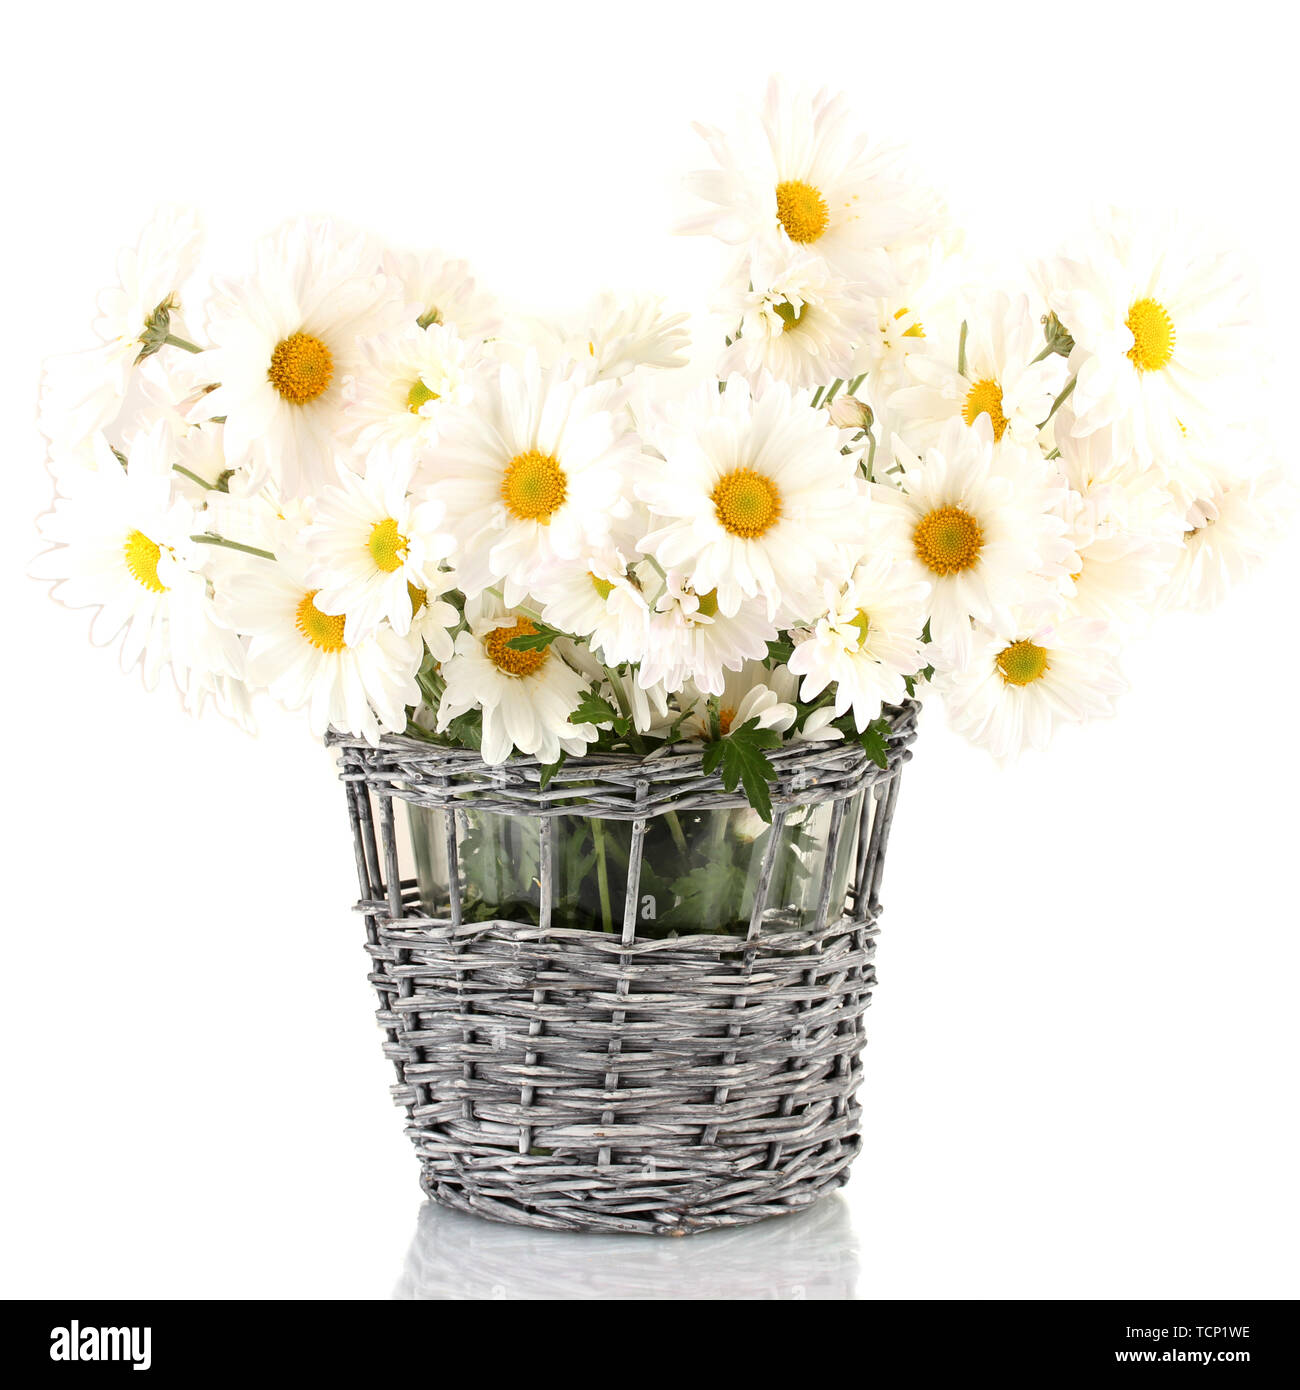 daisies in vase isolated on white - Stock Image